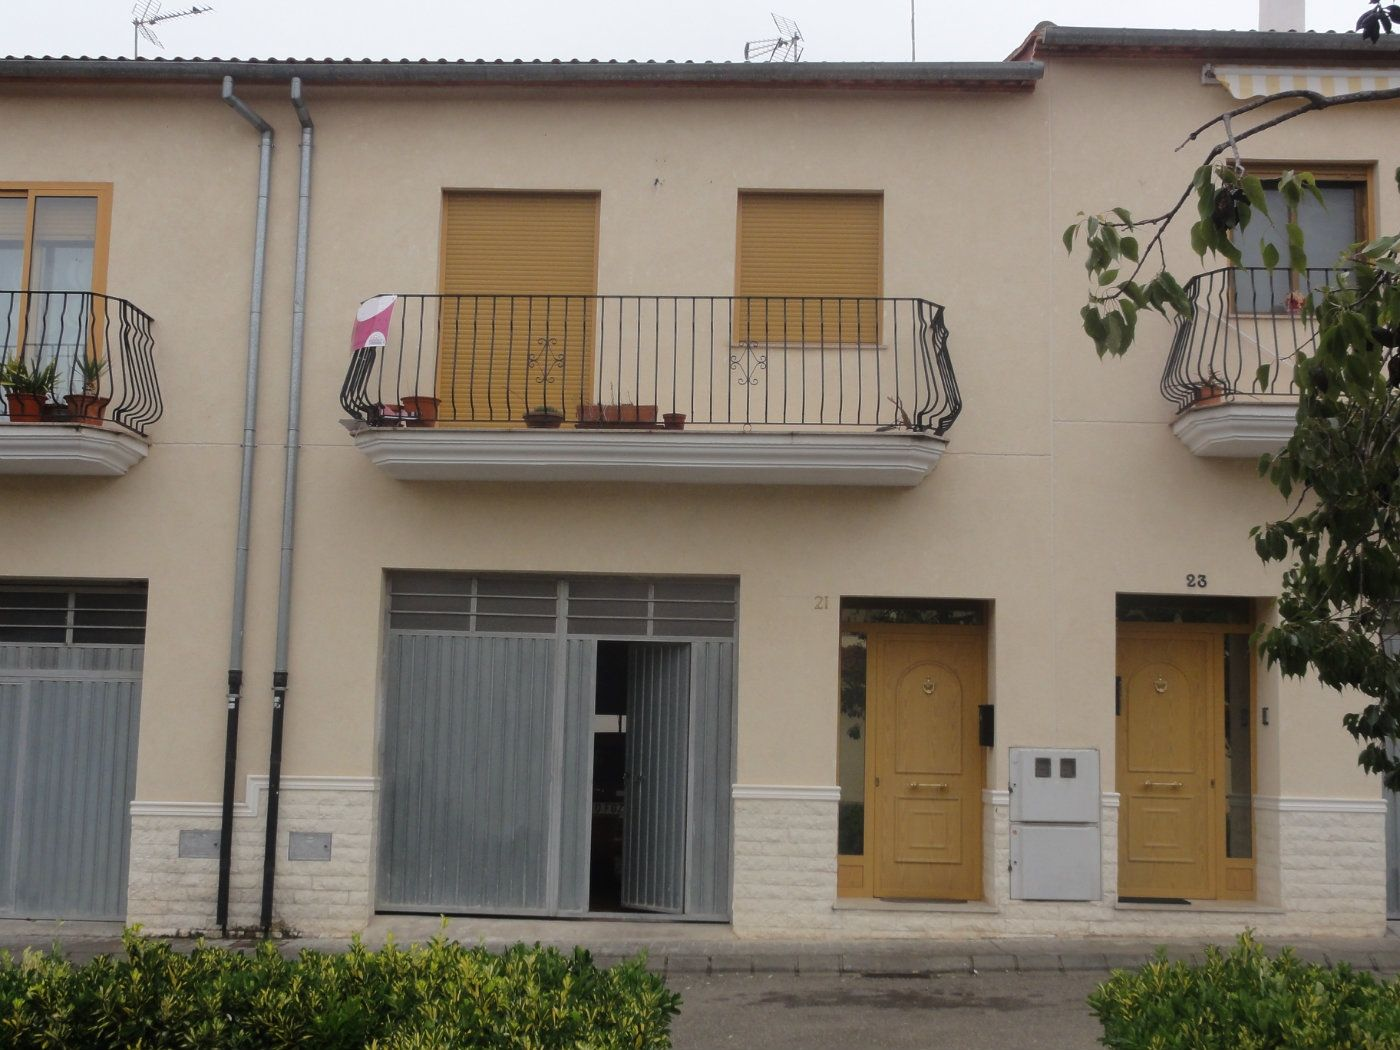 Semi detached house in Plaza mayor, 5. Adosado calidad moderno